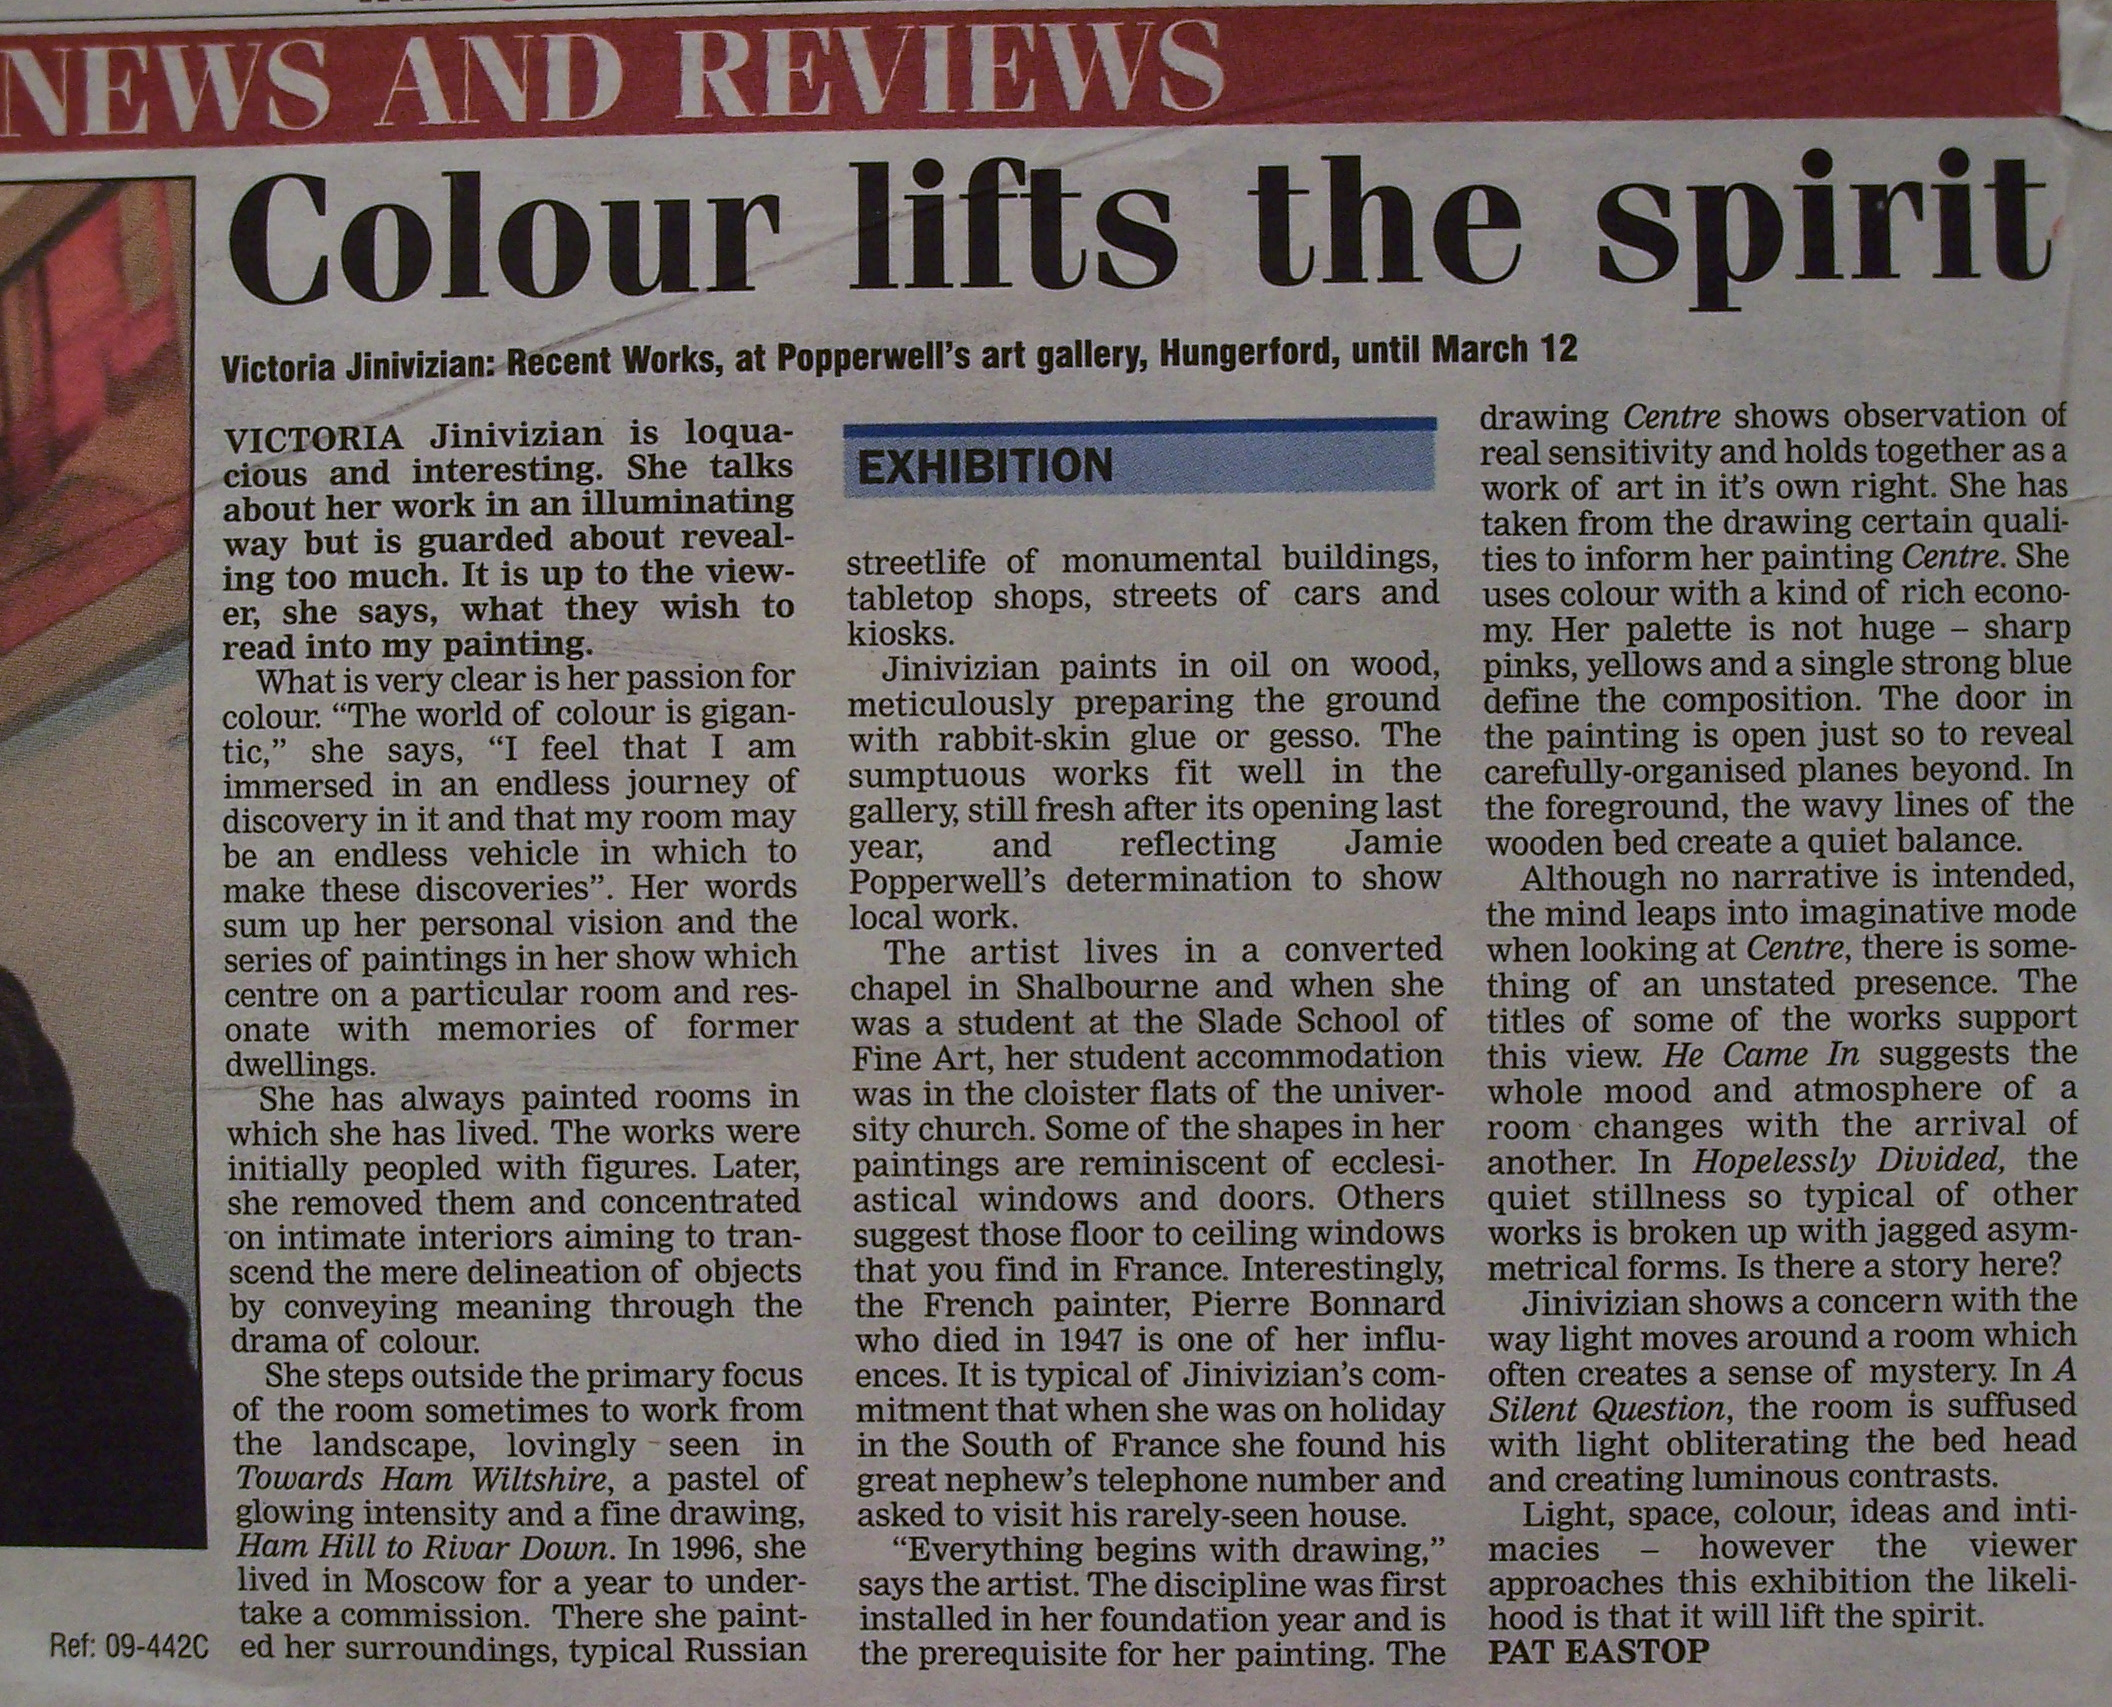 Exhibition review, Newbury Weekly News, 2004